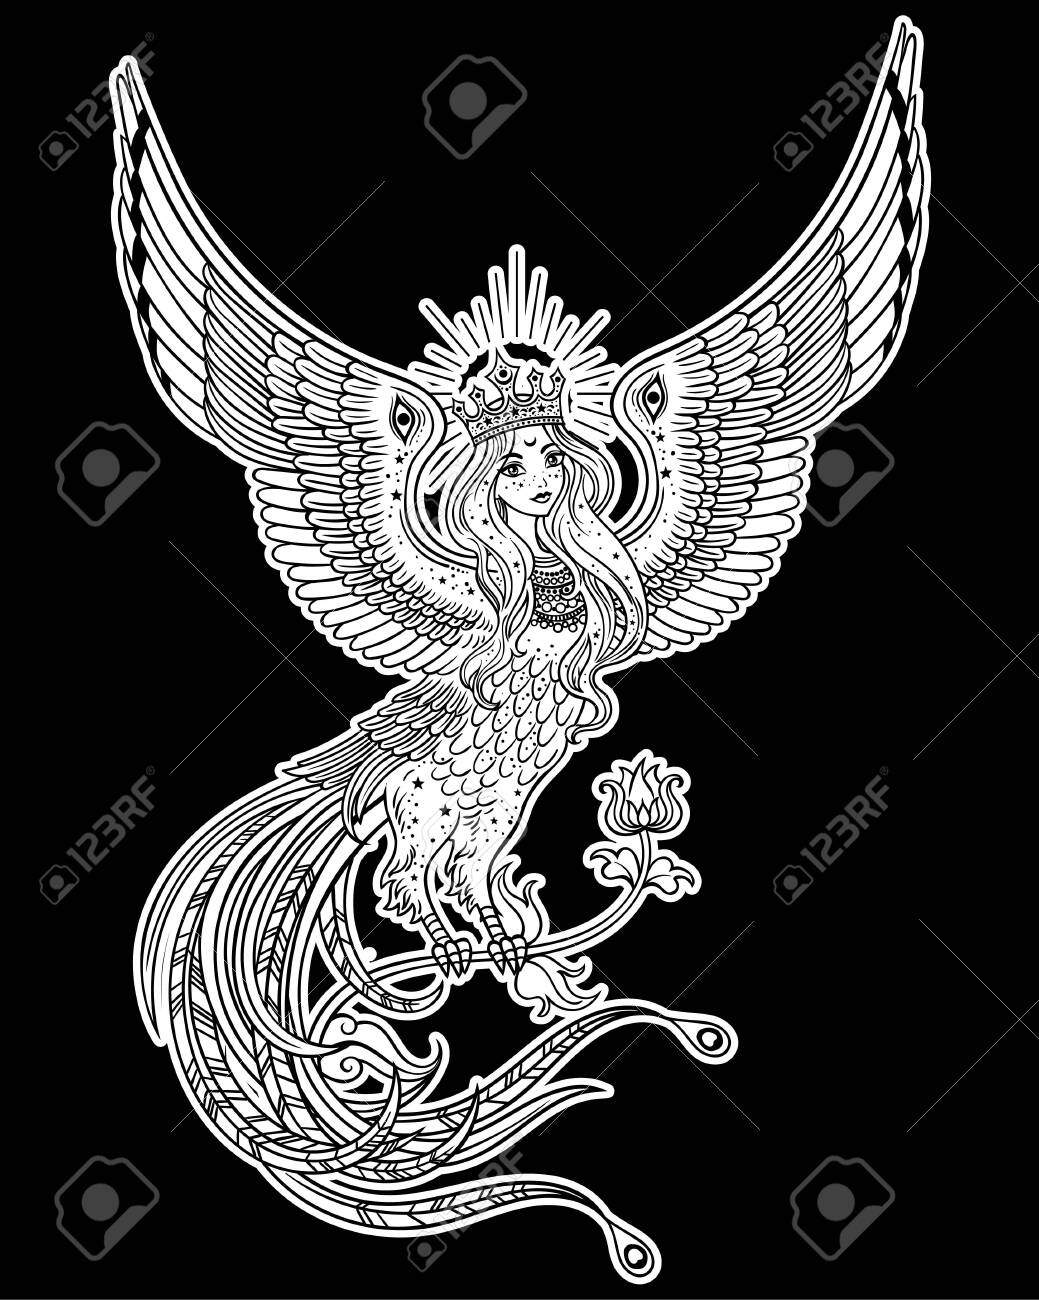 Hand drawn illustration with Beautiful Woman-headed bird. Sirin and Alkonost The Birds of Joy and Sorrow from Russian fairy tale. Vector art, perfect for tattoo, logo, cards and etc - 134726248